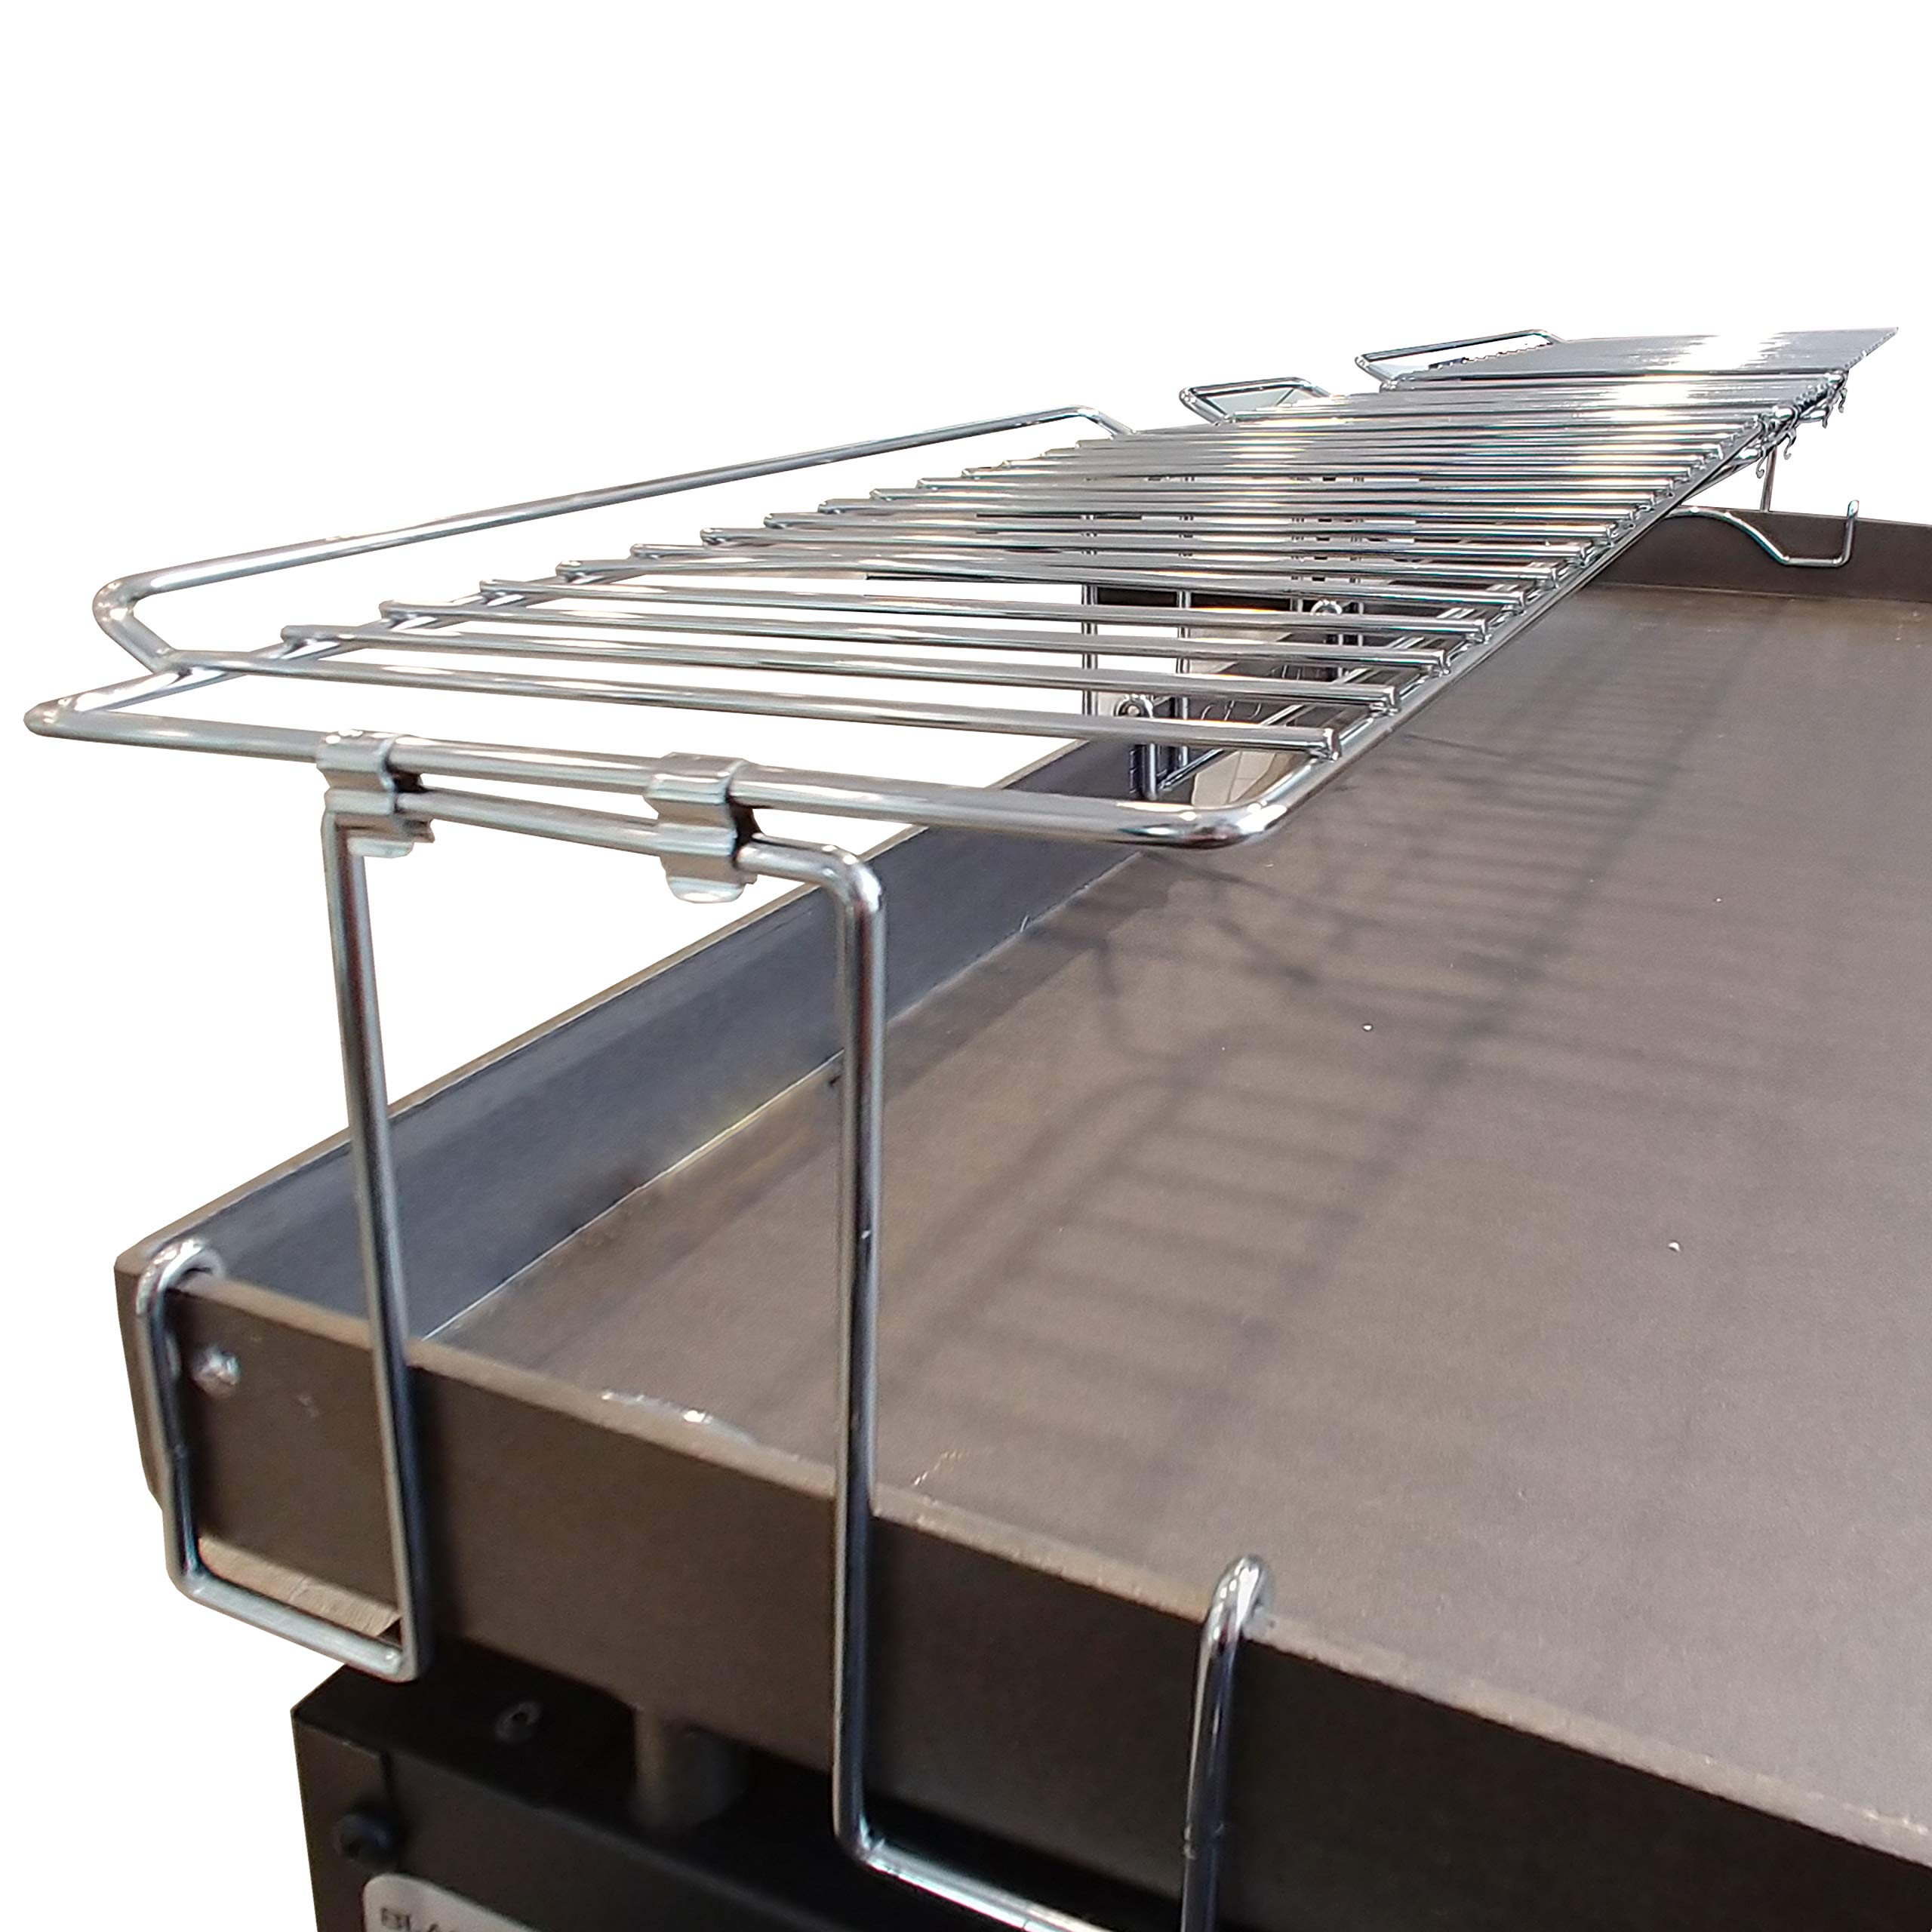 Yukon Glory Premium Stainless Steel 36 Inch Warming Rack, Designed for Blackstone Griddle, Clips on for Sturdy Durable Use